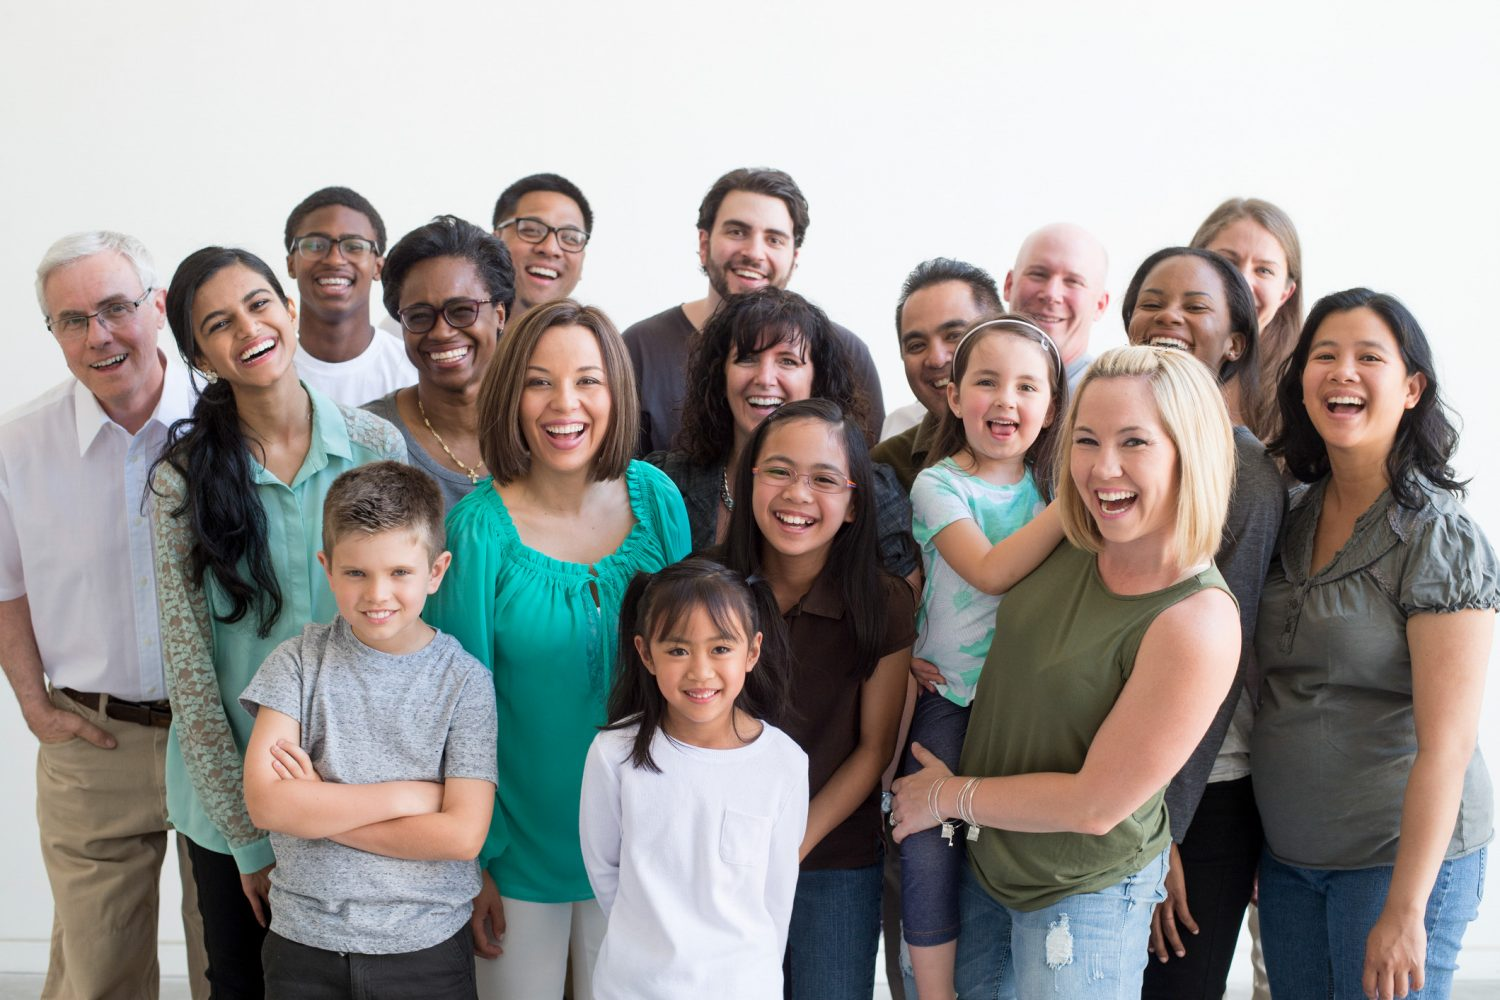 A multi-ethnic group of multiple generations are standing together for a family reunion. They are happily laughing and smiling while looking at the camera.